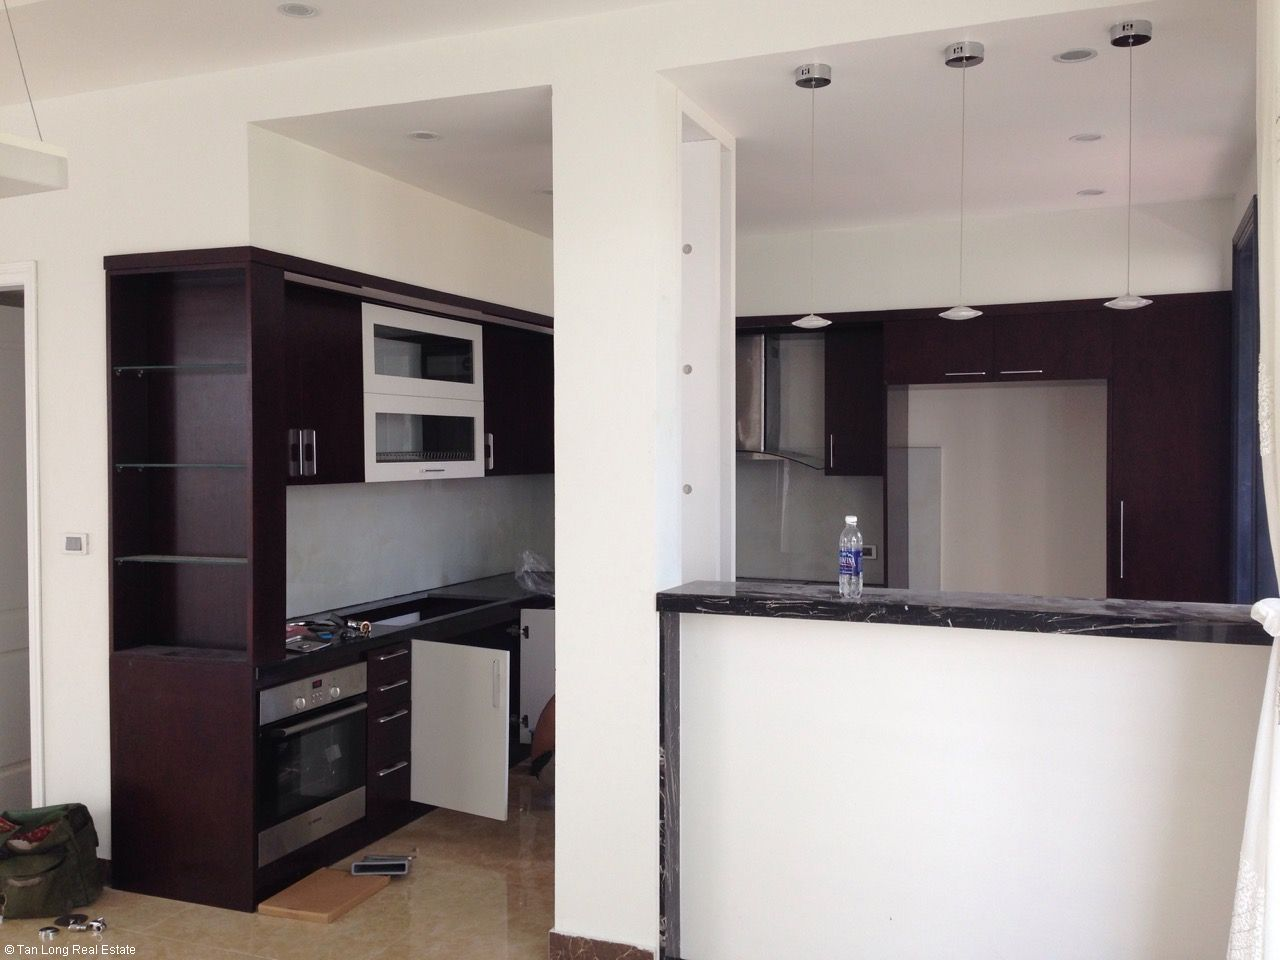 Furnished 05 bedrooms house for rent in Gamuda, Nguyen Xien street, Hoang Mai district. 3